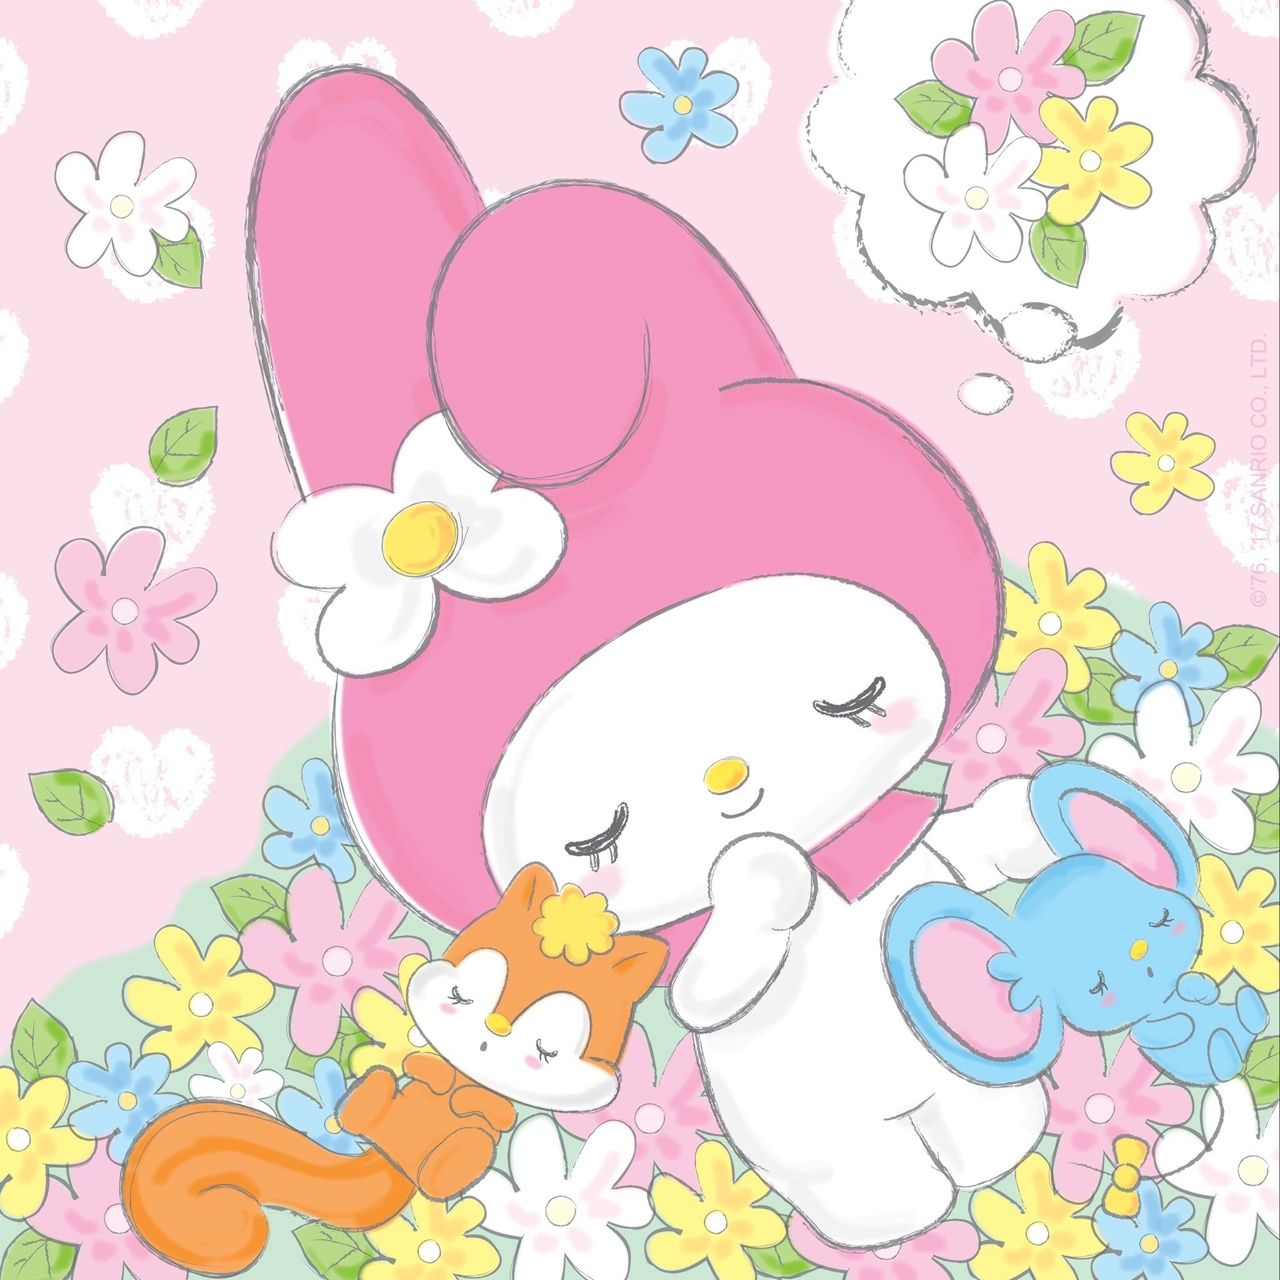 Amazing Wallpaper Hello Kitty Friend - a8e554563233183dd49f33822a019d57  Pictures_979338.jpg